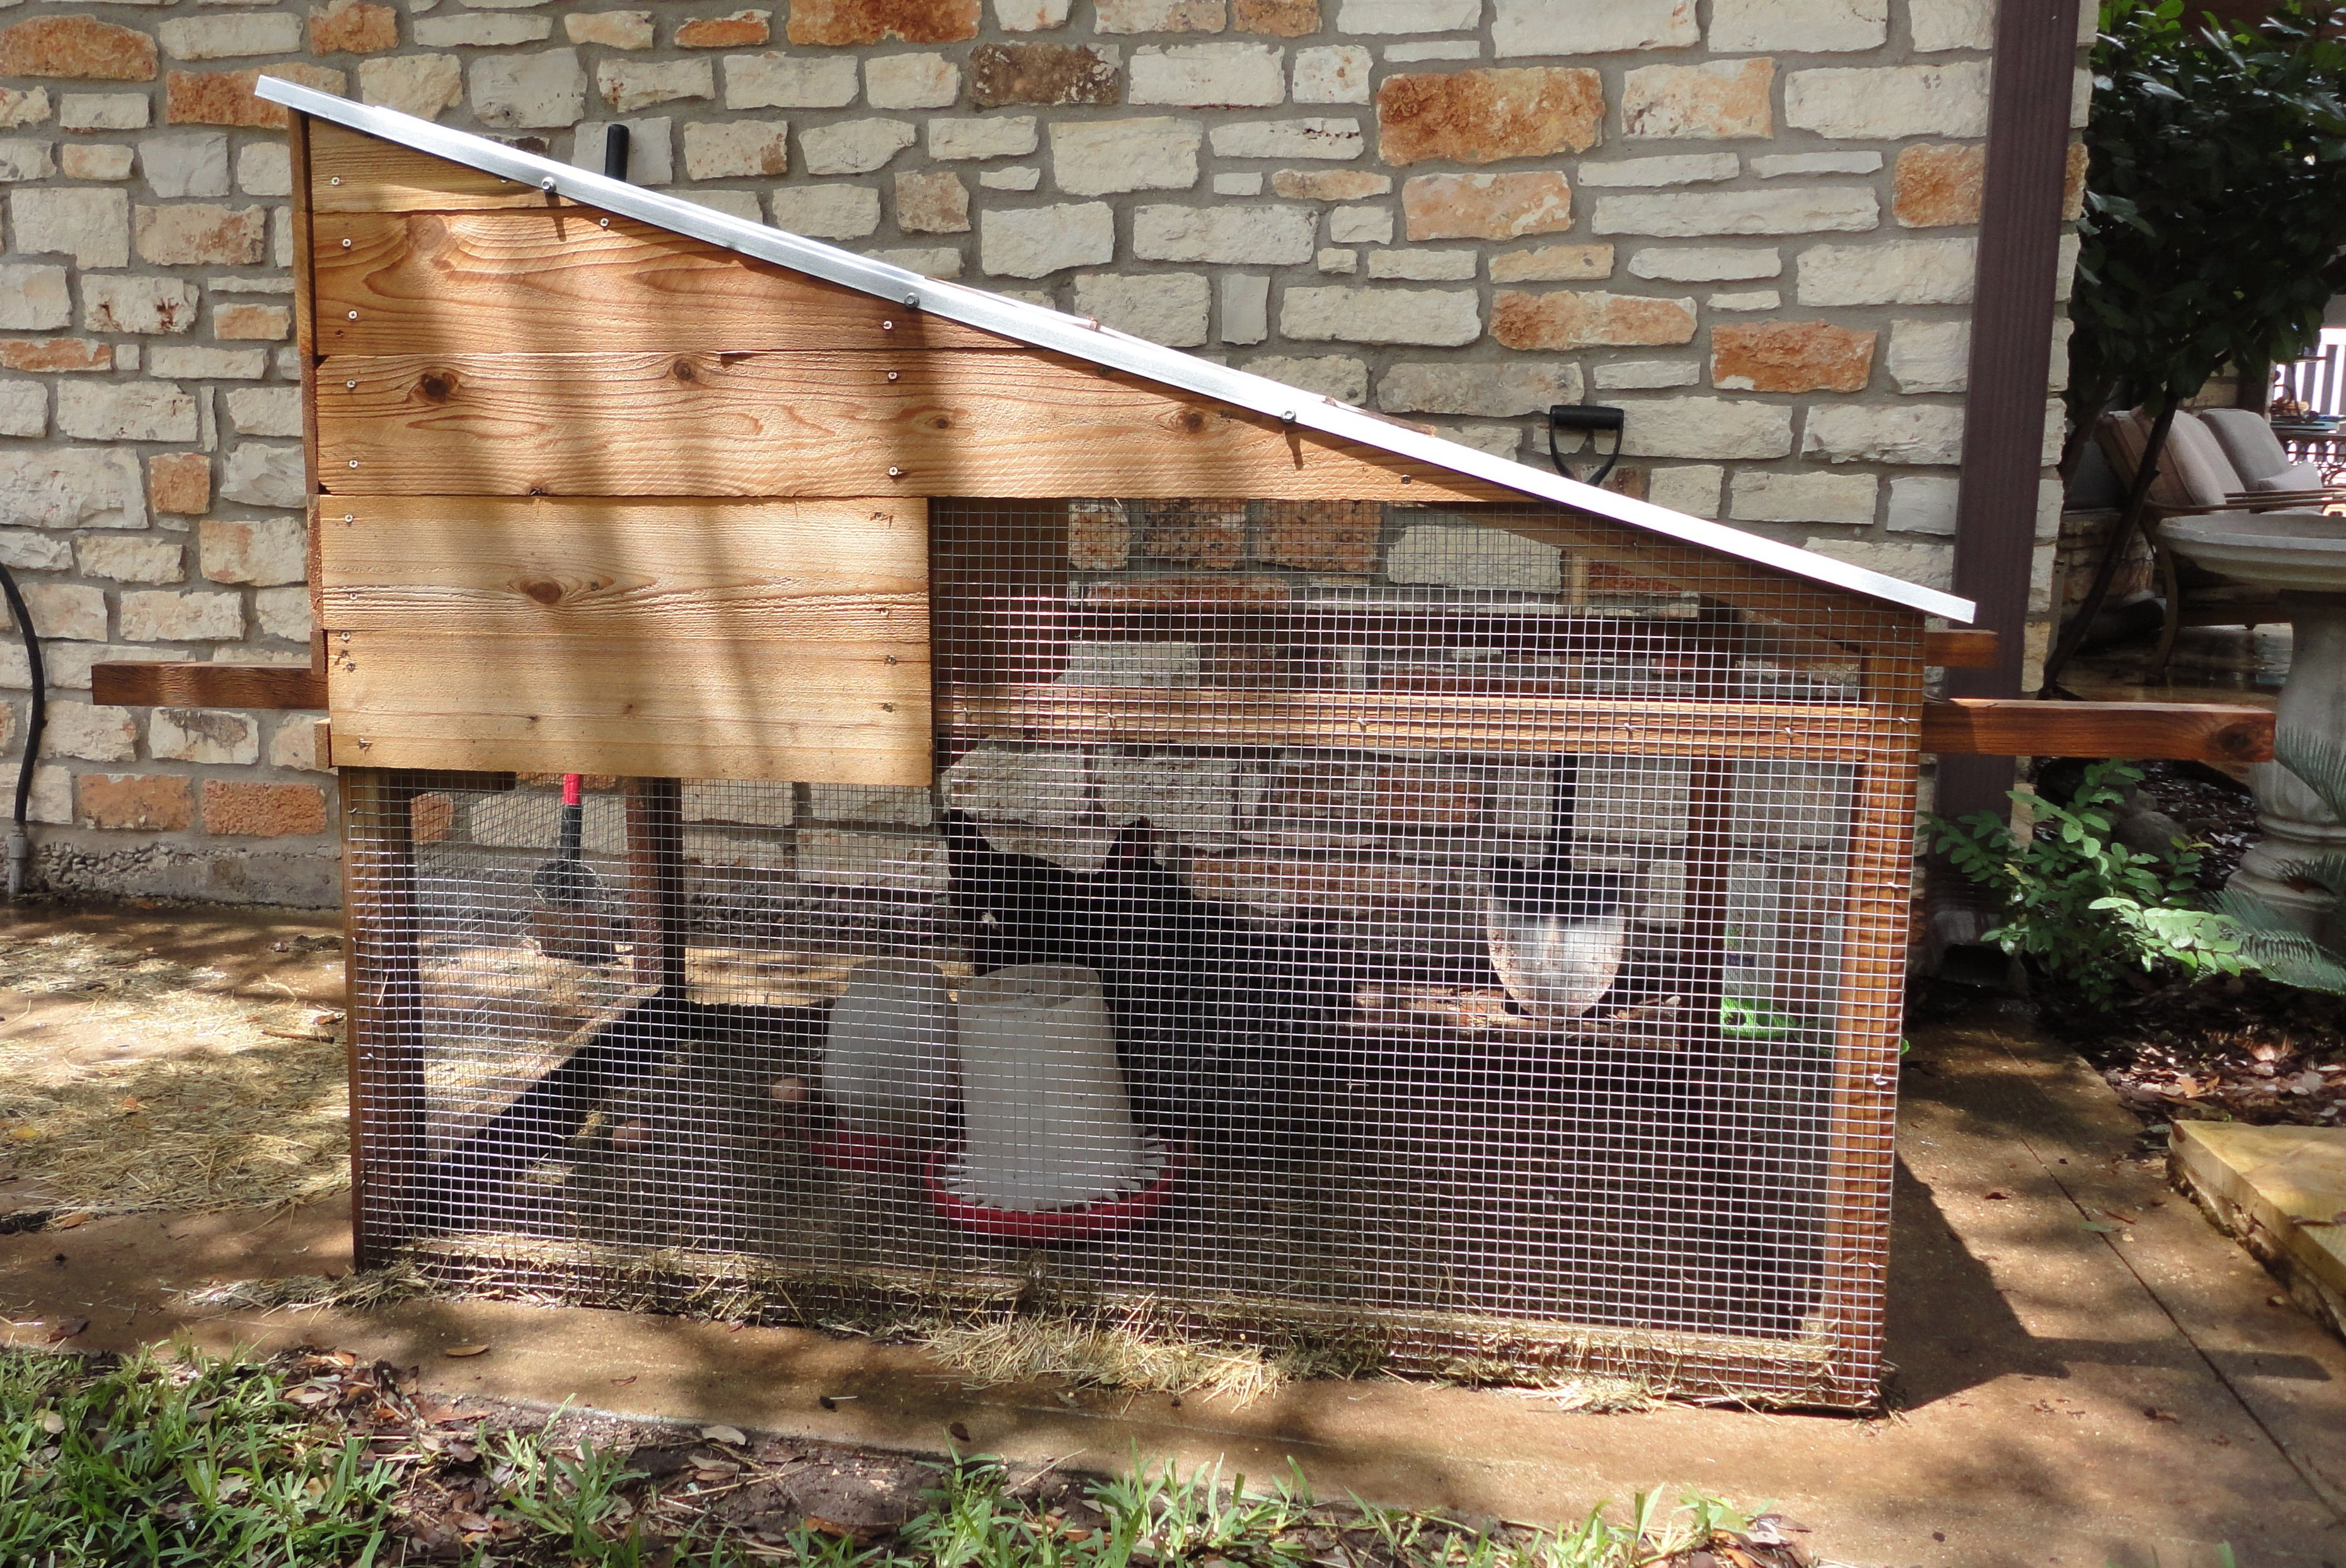 Portable Backyard Chicken Coop, 3 Ft X 5 Ft For A Total Of 15 Square